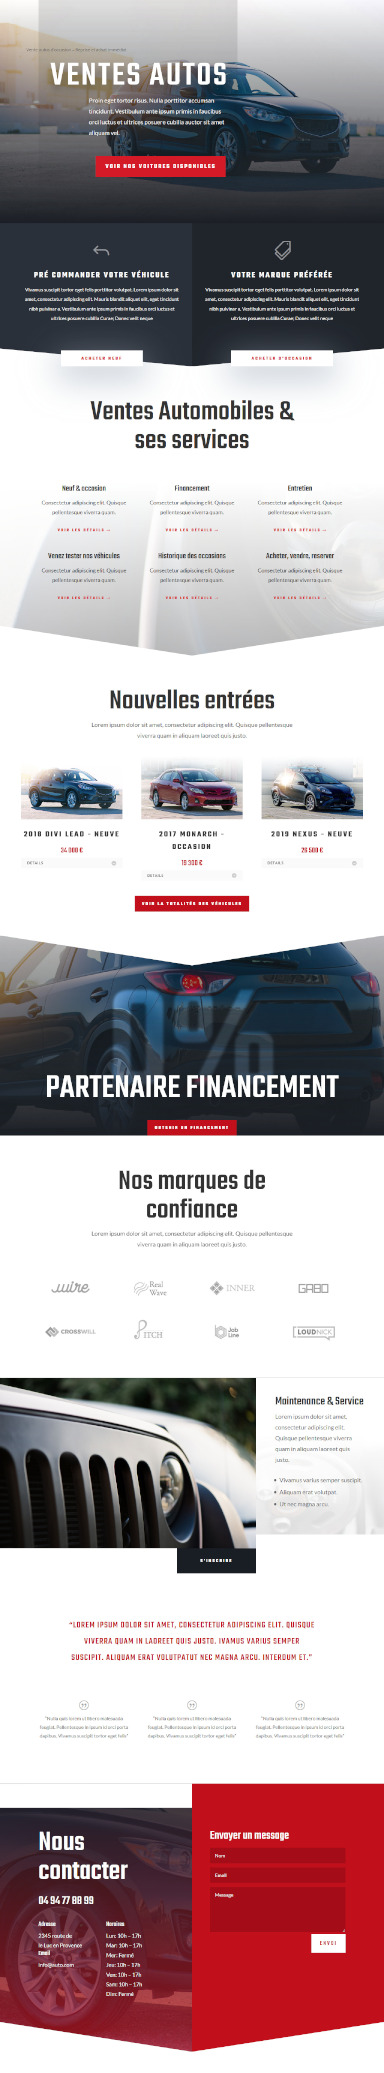 site vente auto par totum orbem creation de site internet